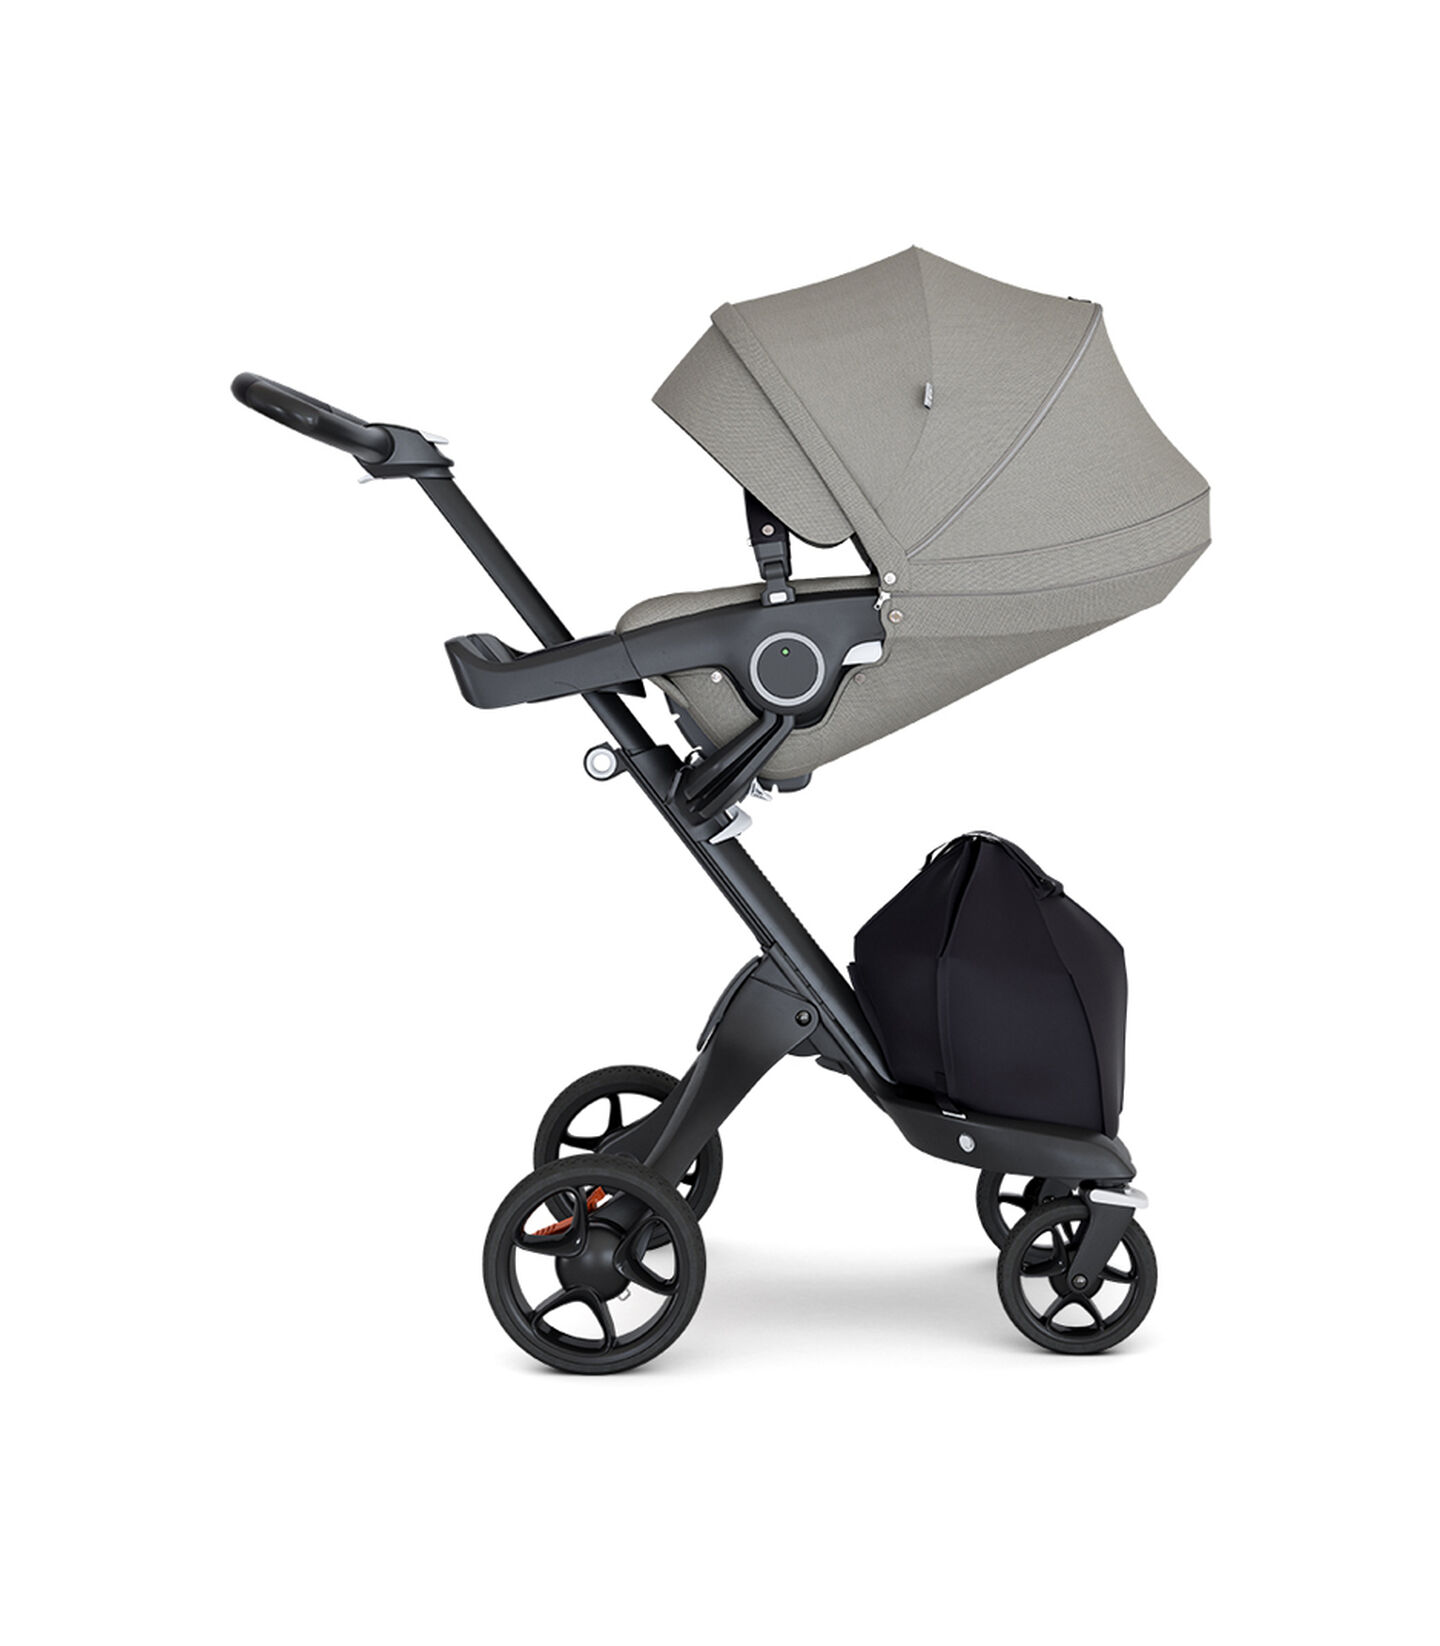 Stokke® Xplory® with Black Chassis and Leatherette Black handle. Stokke® Stroller Seat Brushed Grey with extended canopy.